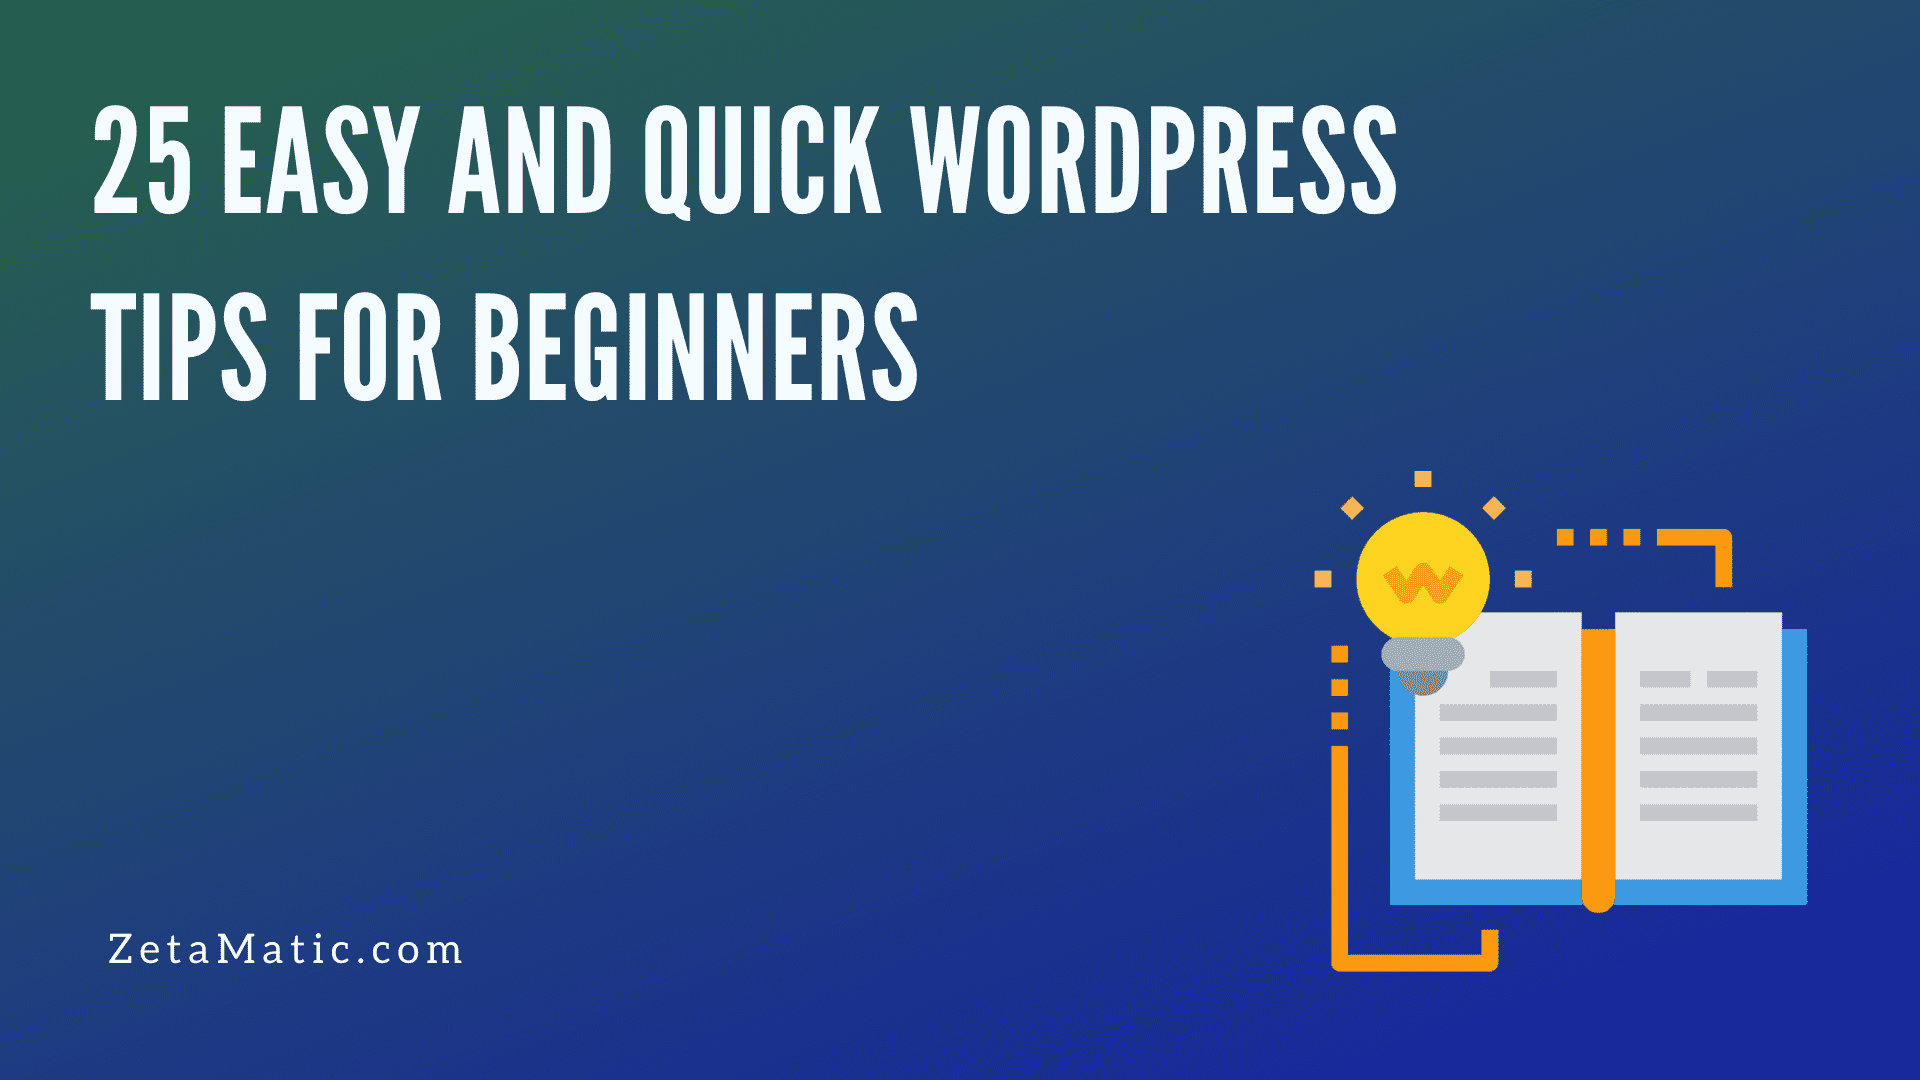 25 Easy and Quick WordPress Tips for Beginners